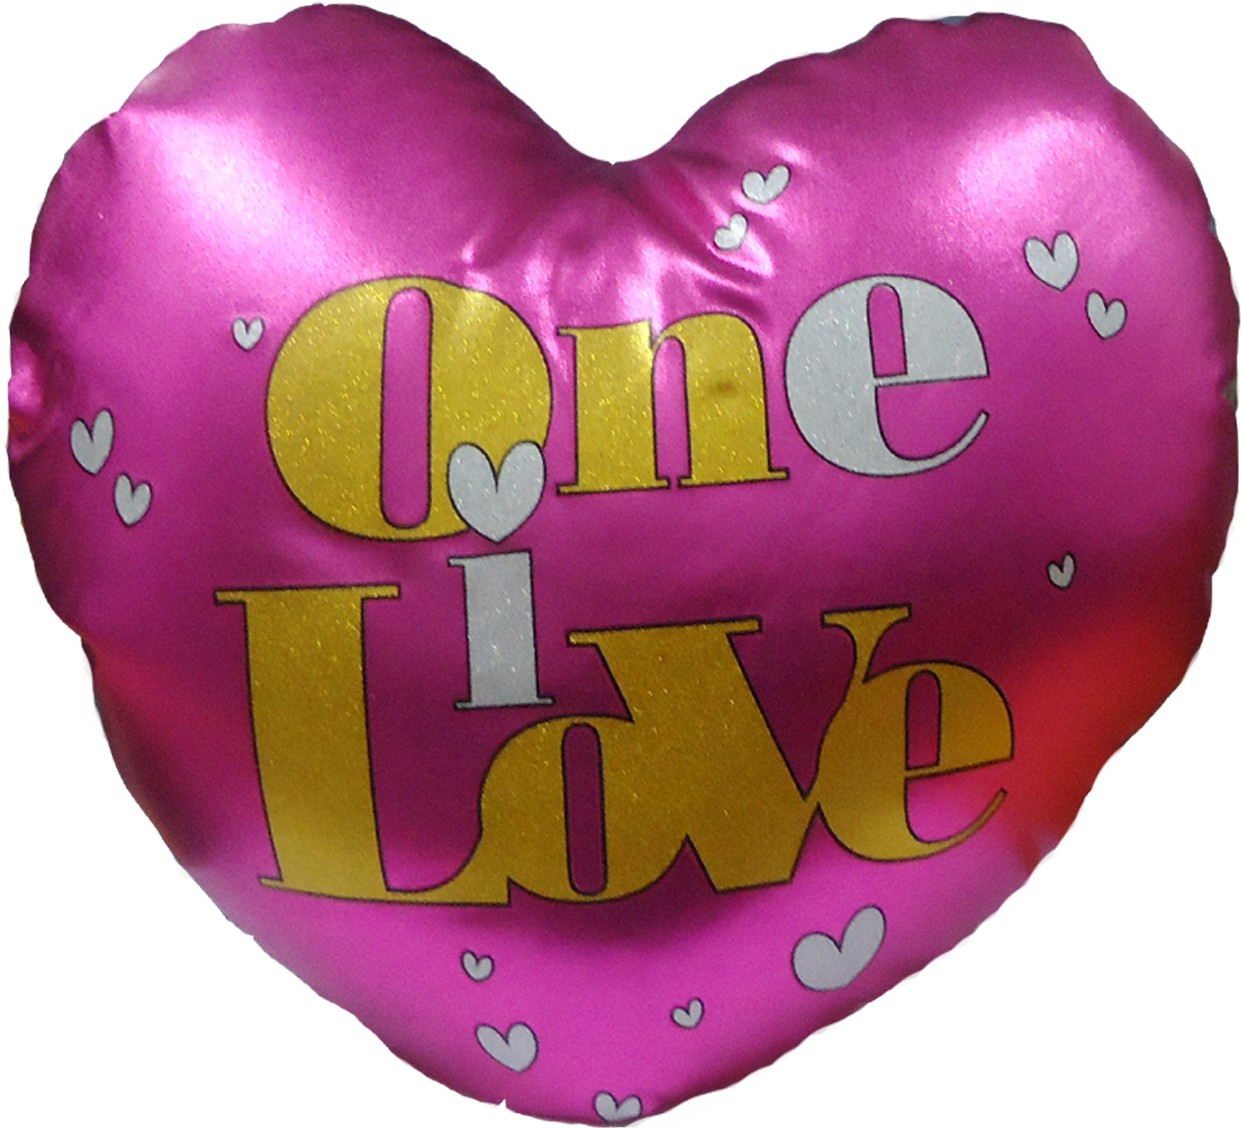 Archies Soft Love Heart Cushion A Beautiful Lovely Gift For Your Valentine 11 inch